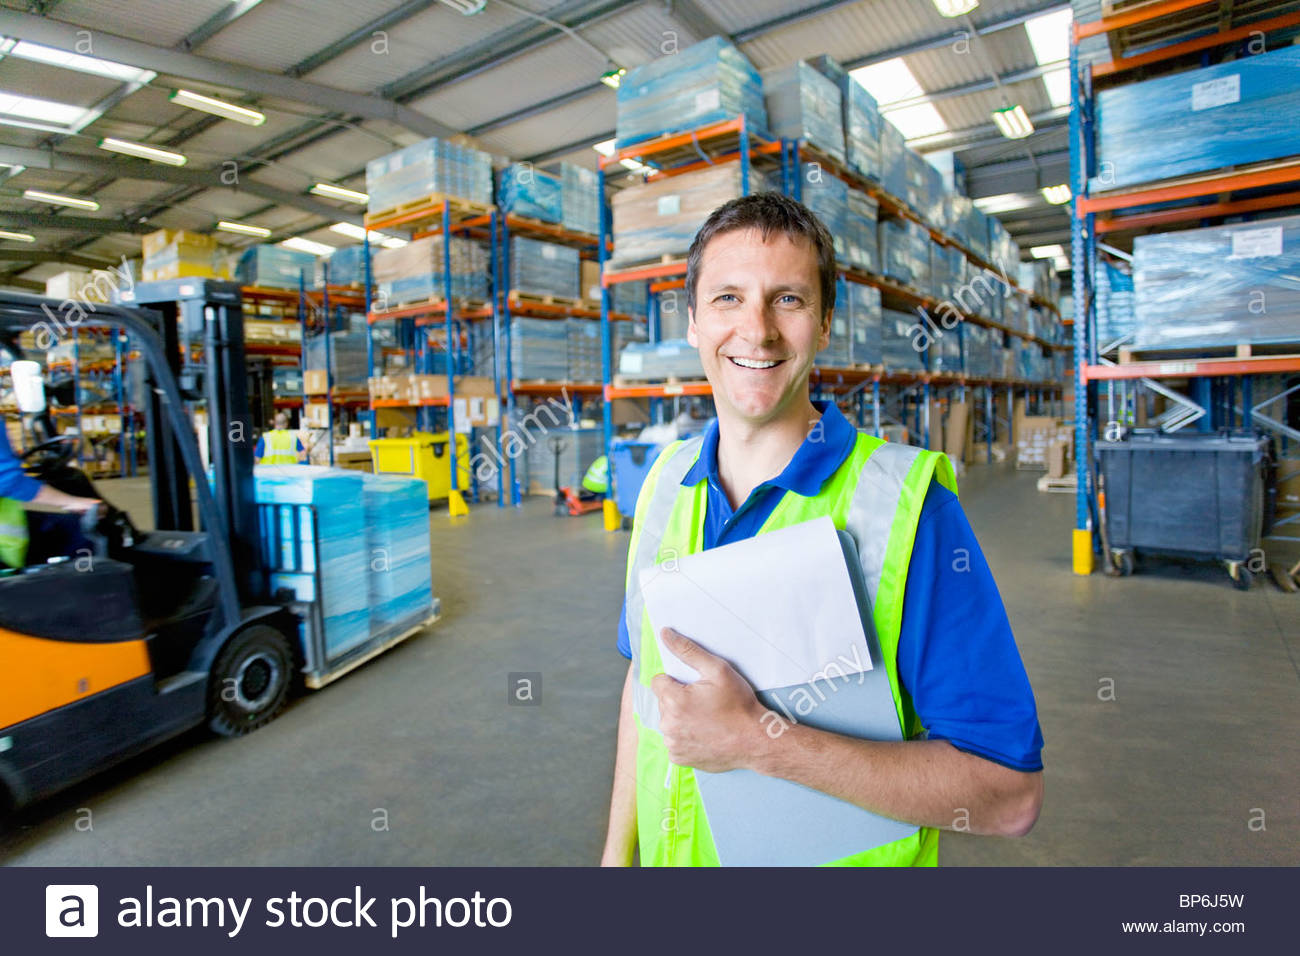 Worker in warehouse holding clipboard - Stock Image